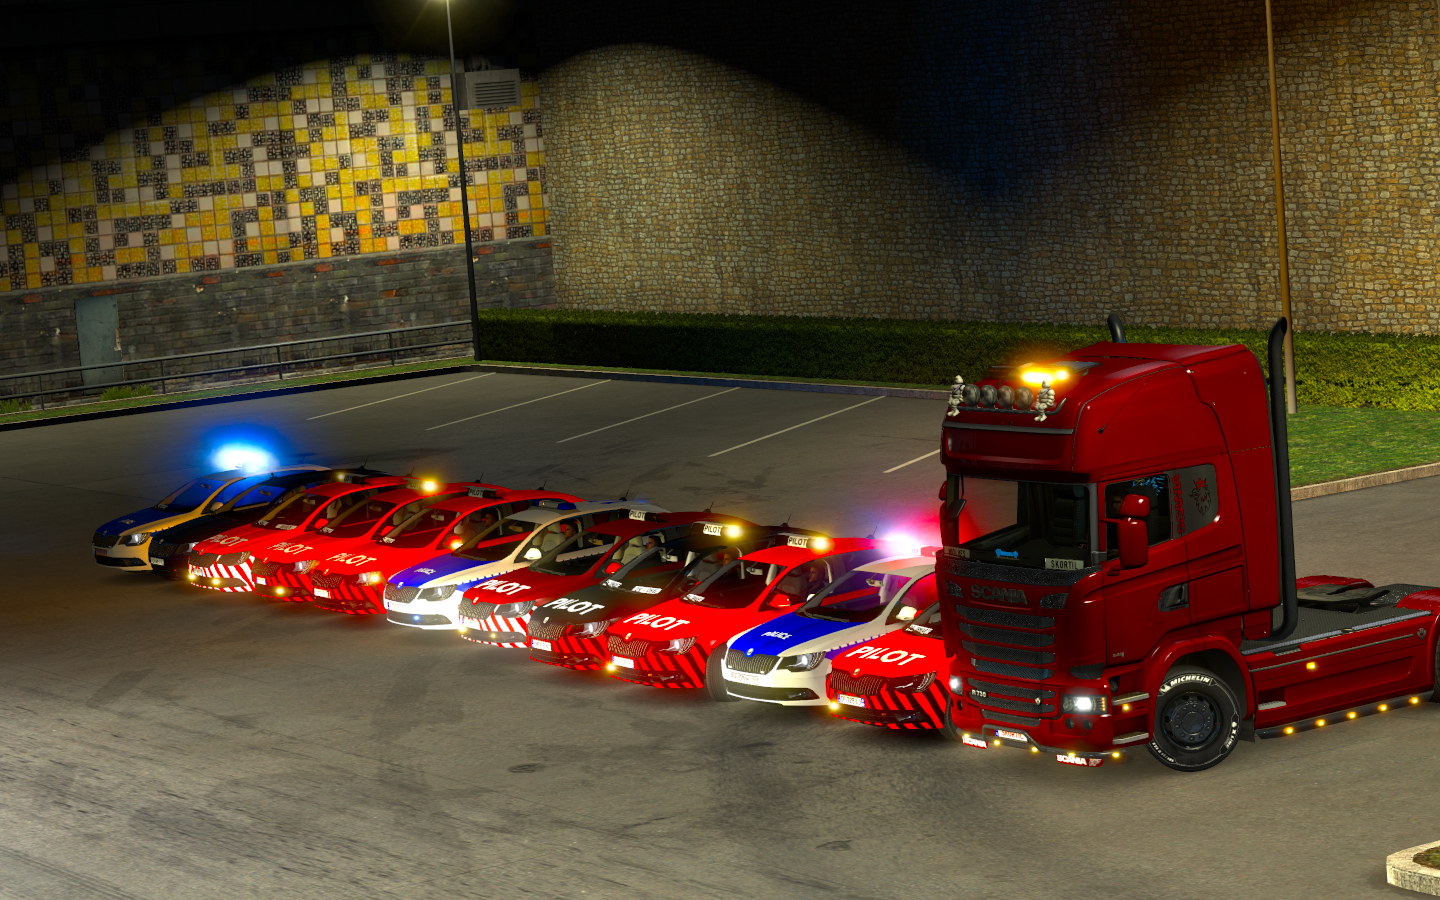 ets2_20190315_224417_00.png